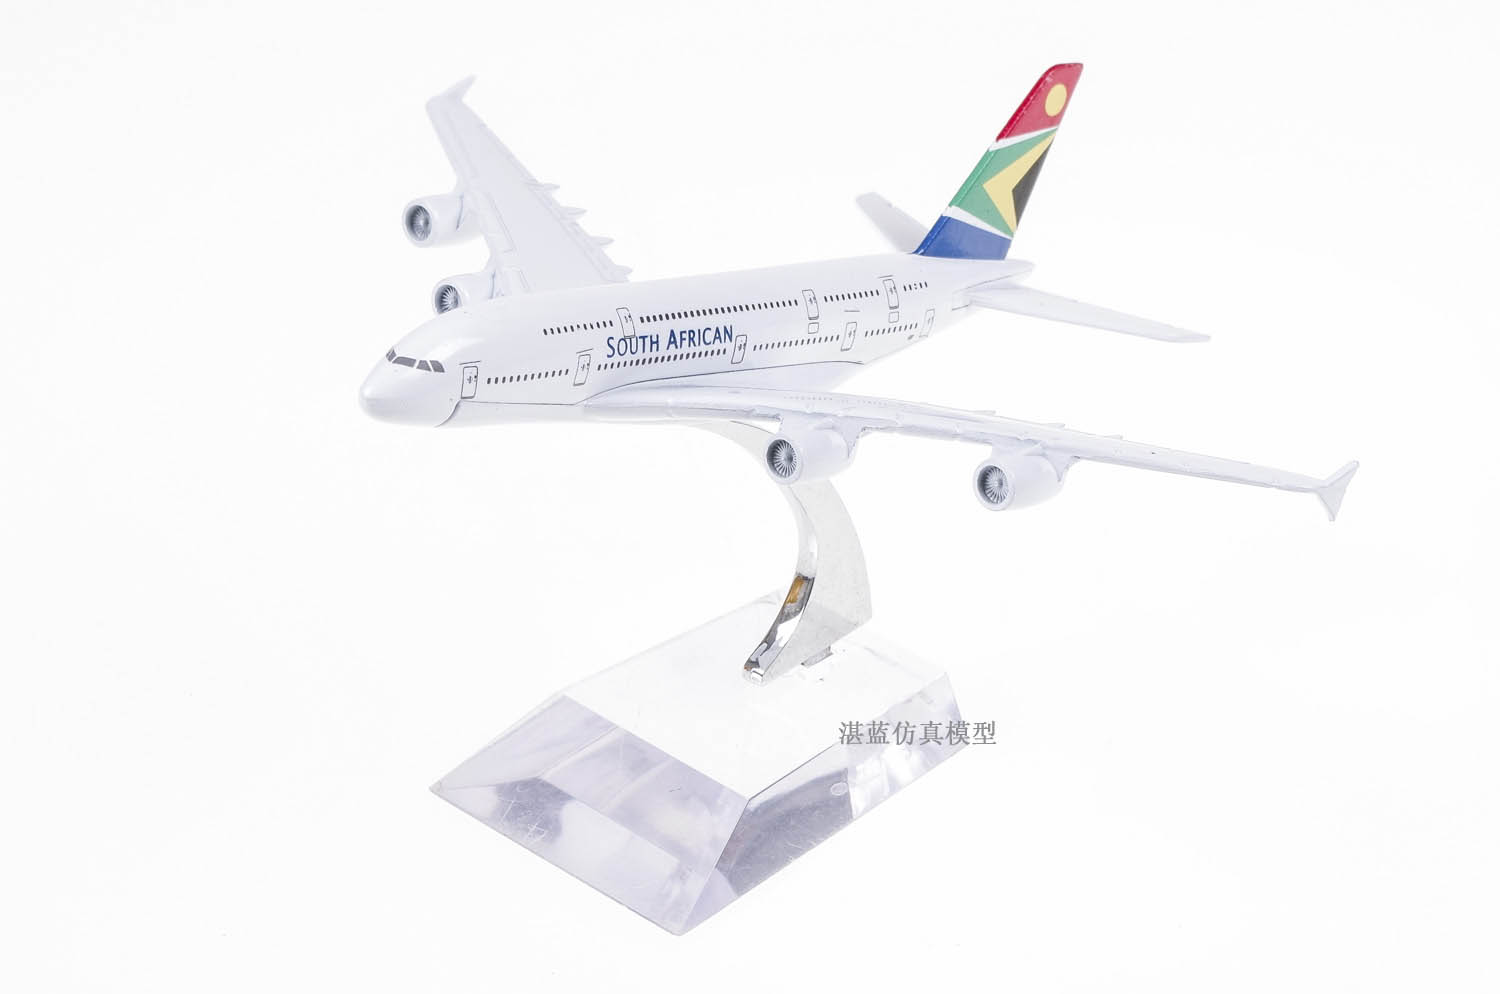 Brand New 1/500 Scale Airplane Model Toys South African Airways Airbus A380 Airliner Diecast Metal Plane Model Toy For Gift(China (Mainland))